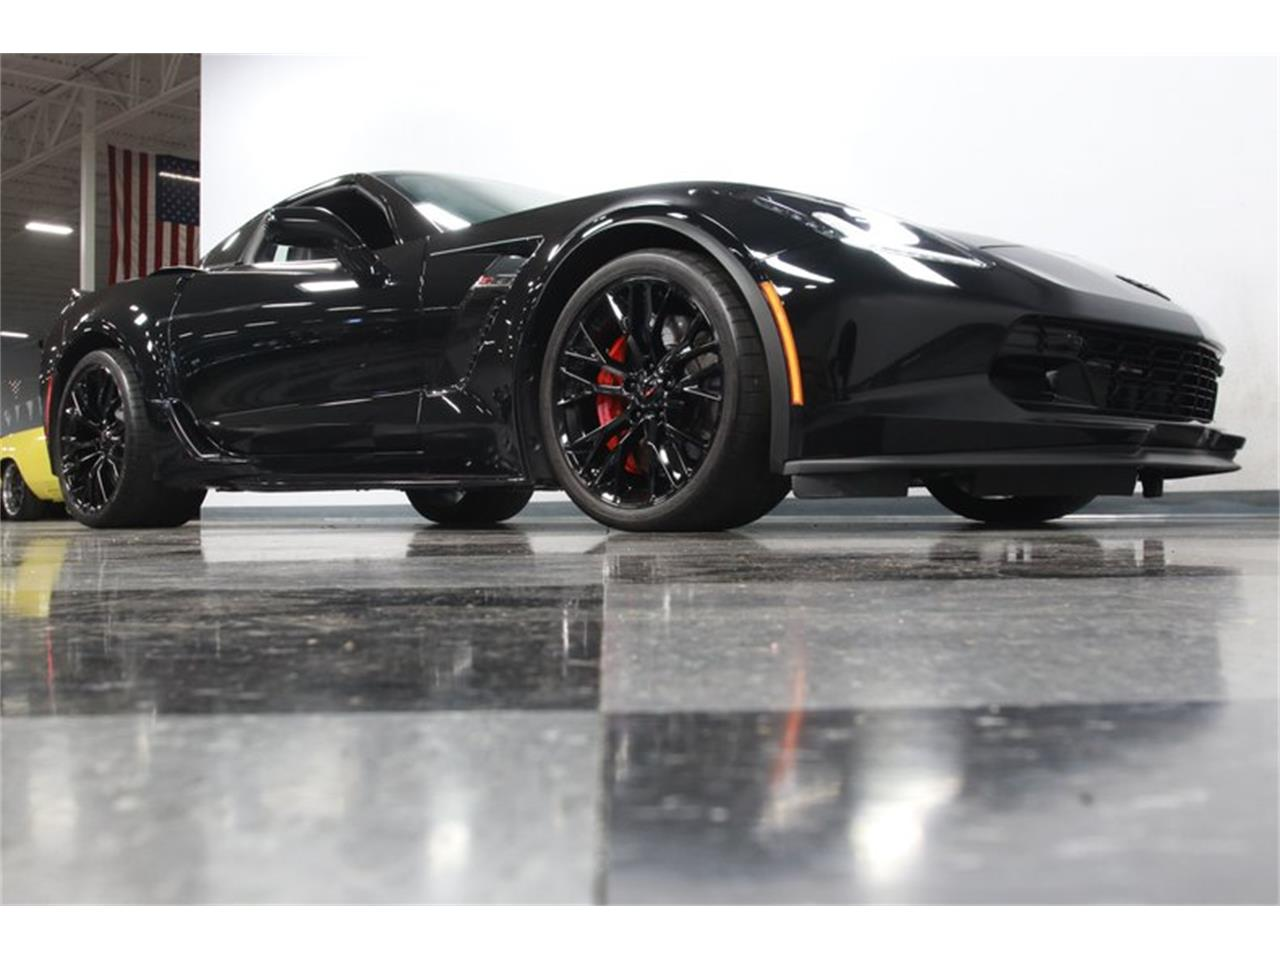 2019 Chevrolet Corvette (CC-1410387) for sale in Concord, North Carolina